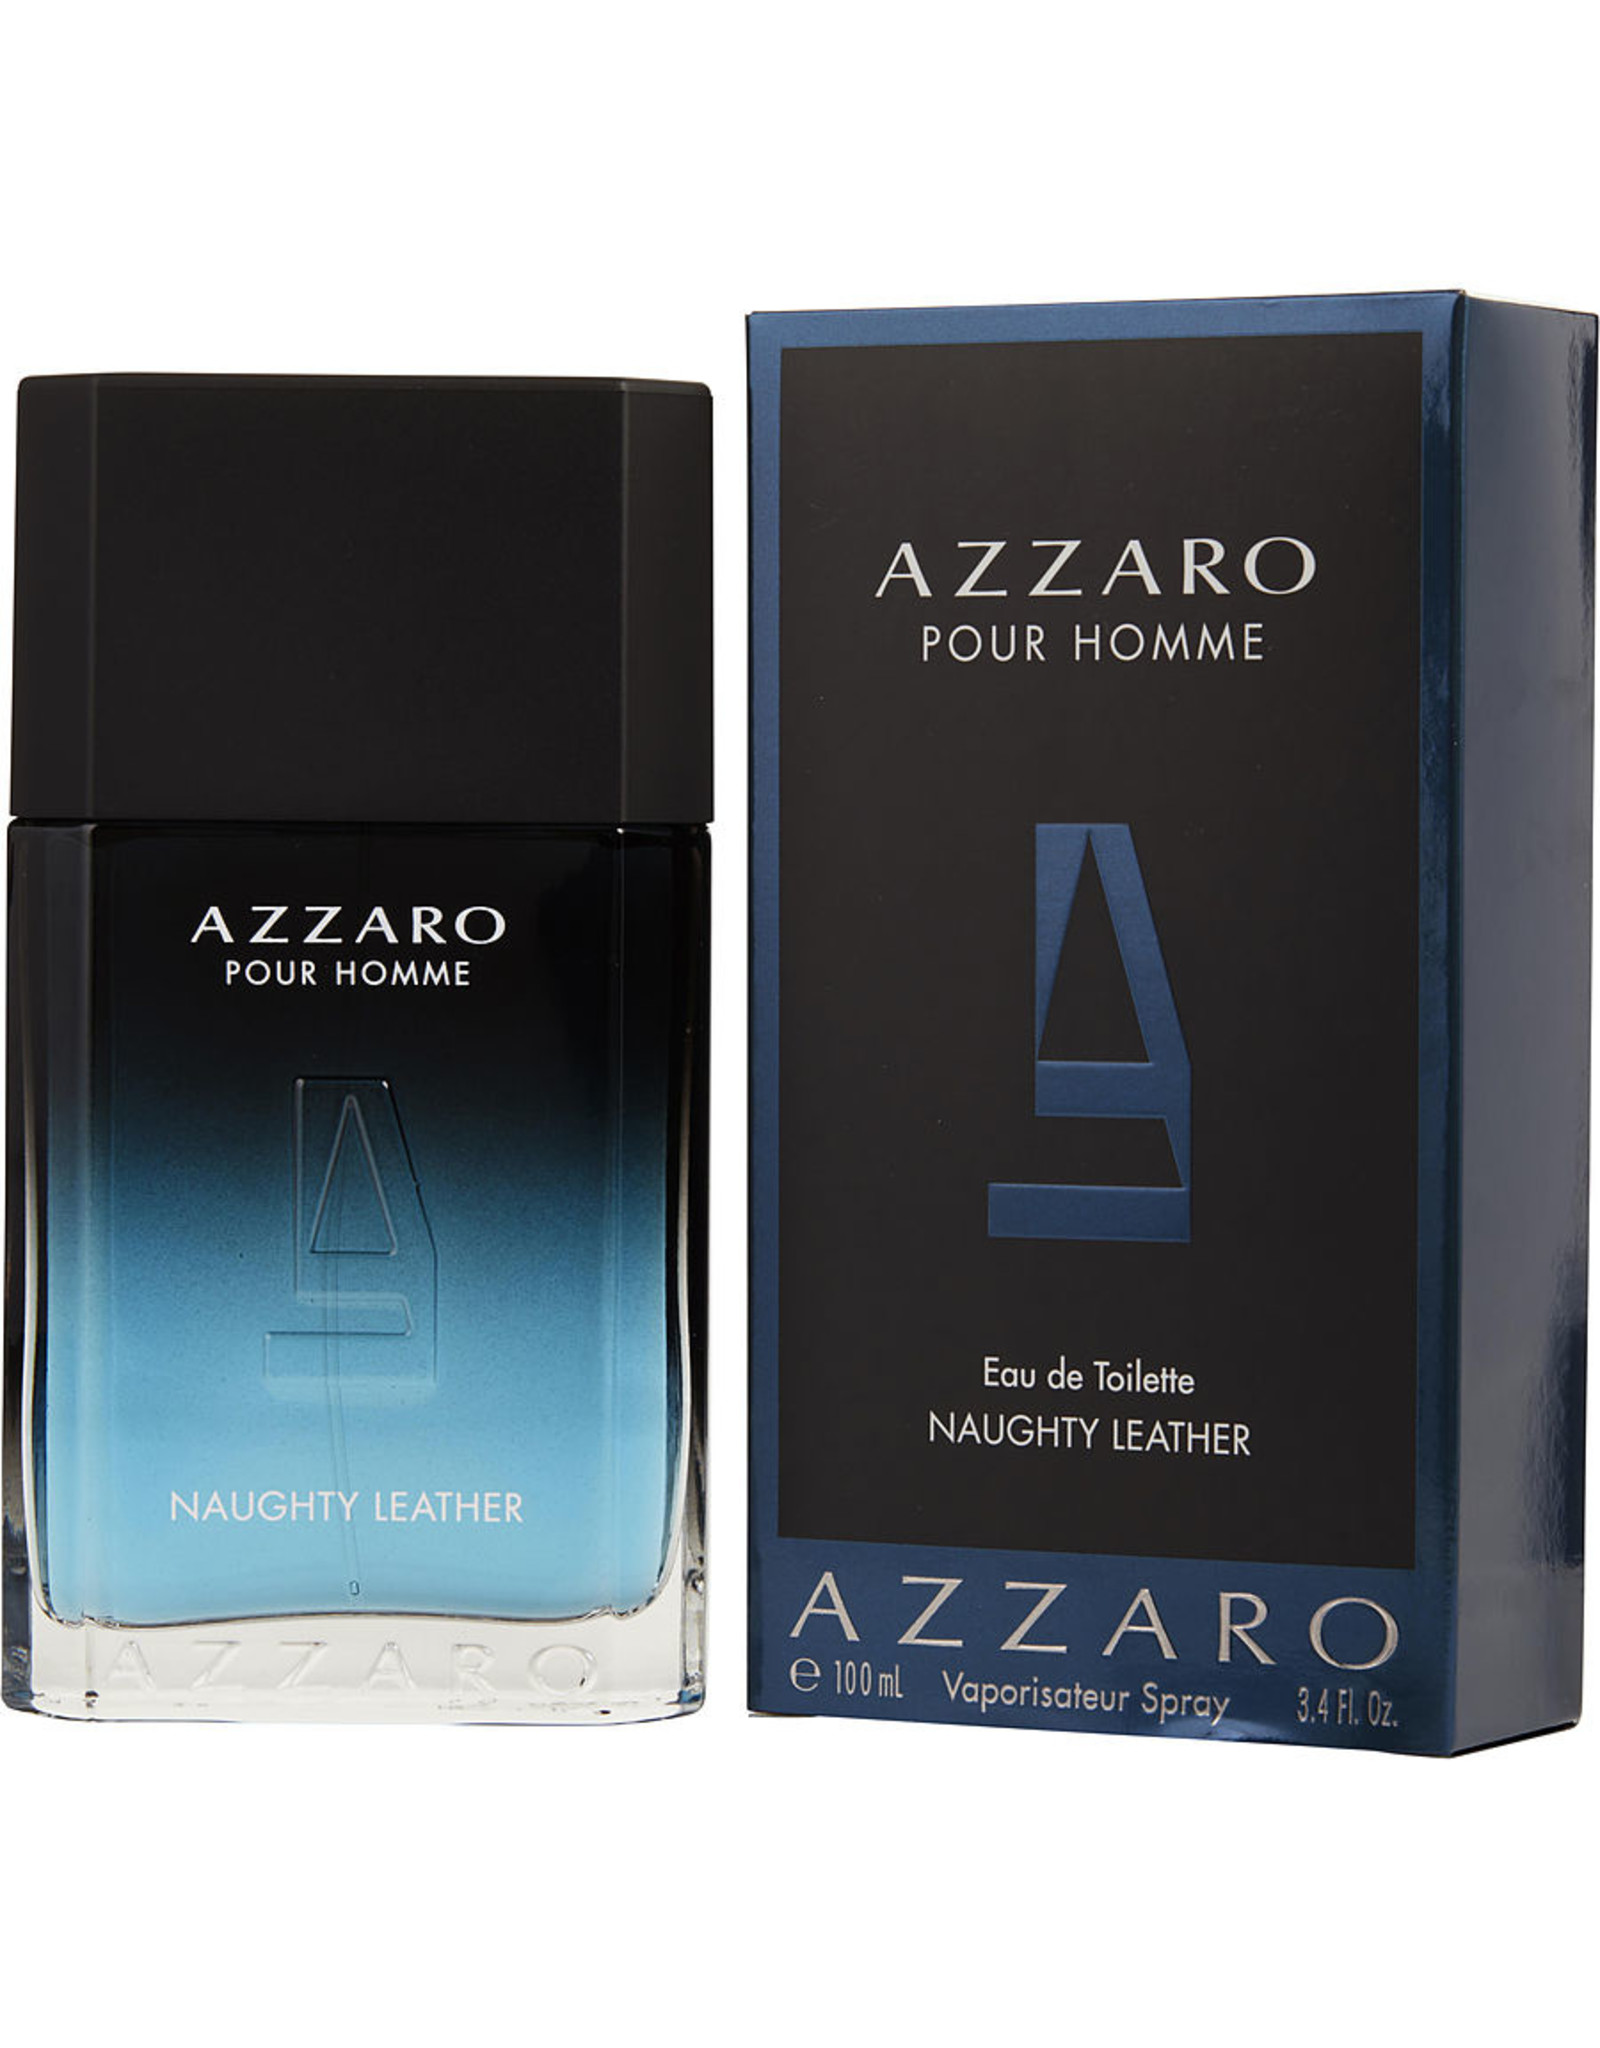 AZZARO AZZARO POUR HOMME NAUGHTY LEATHER